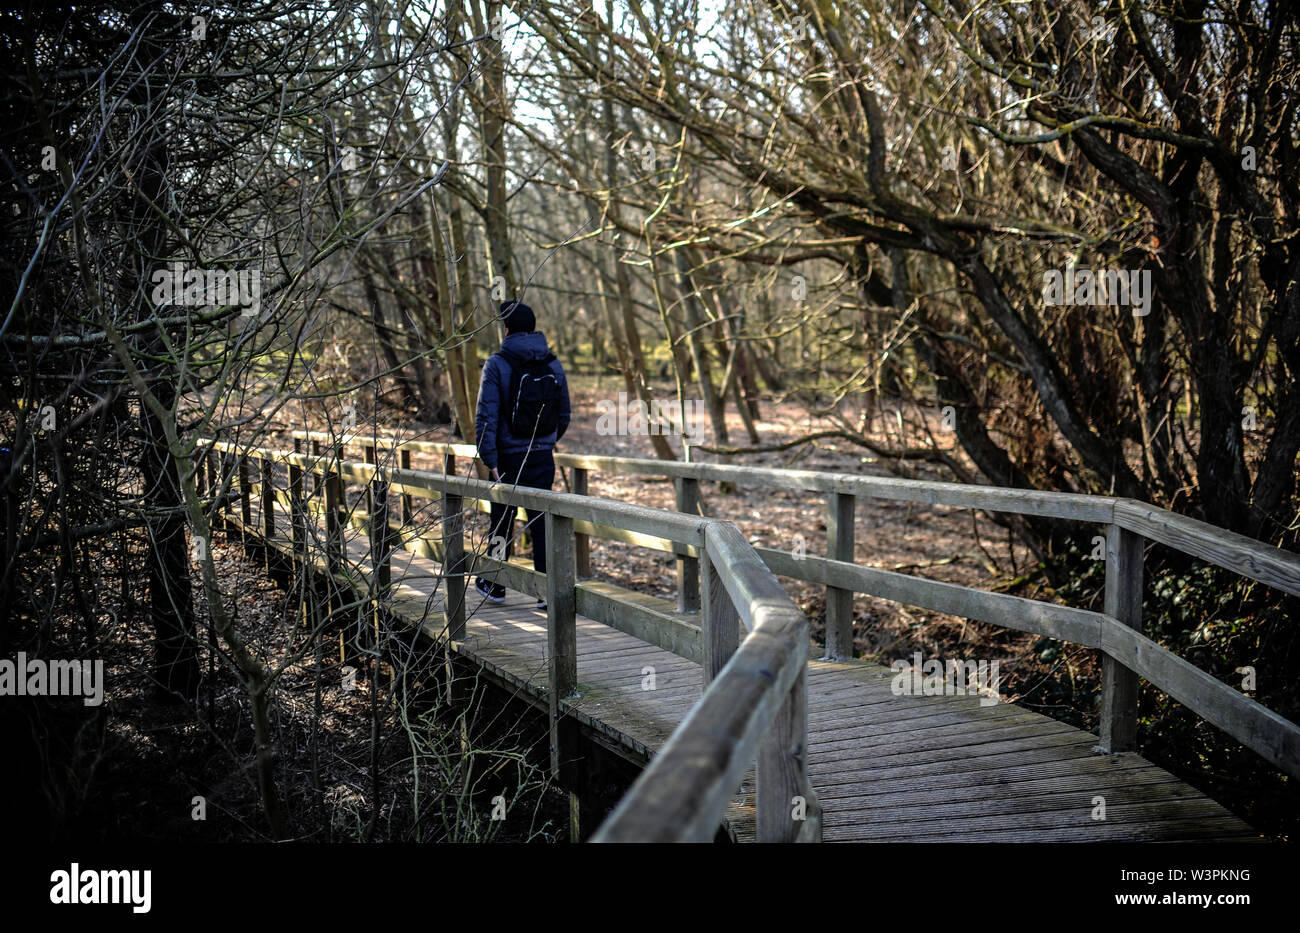 Sylt, Germany. 18th Feb, 2019. A young man walks through the forest of Odde-Hörnum on the island of Sylt. Sylt is the largest North Frisian island in Germany. Credit: Britta Pedersen/dpa-Zentralbild/ZB/dpa/Alamy Live News - Stock Image